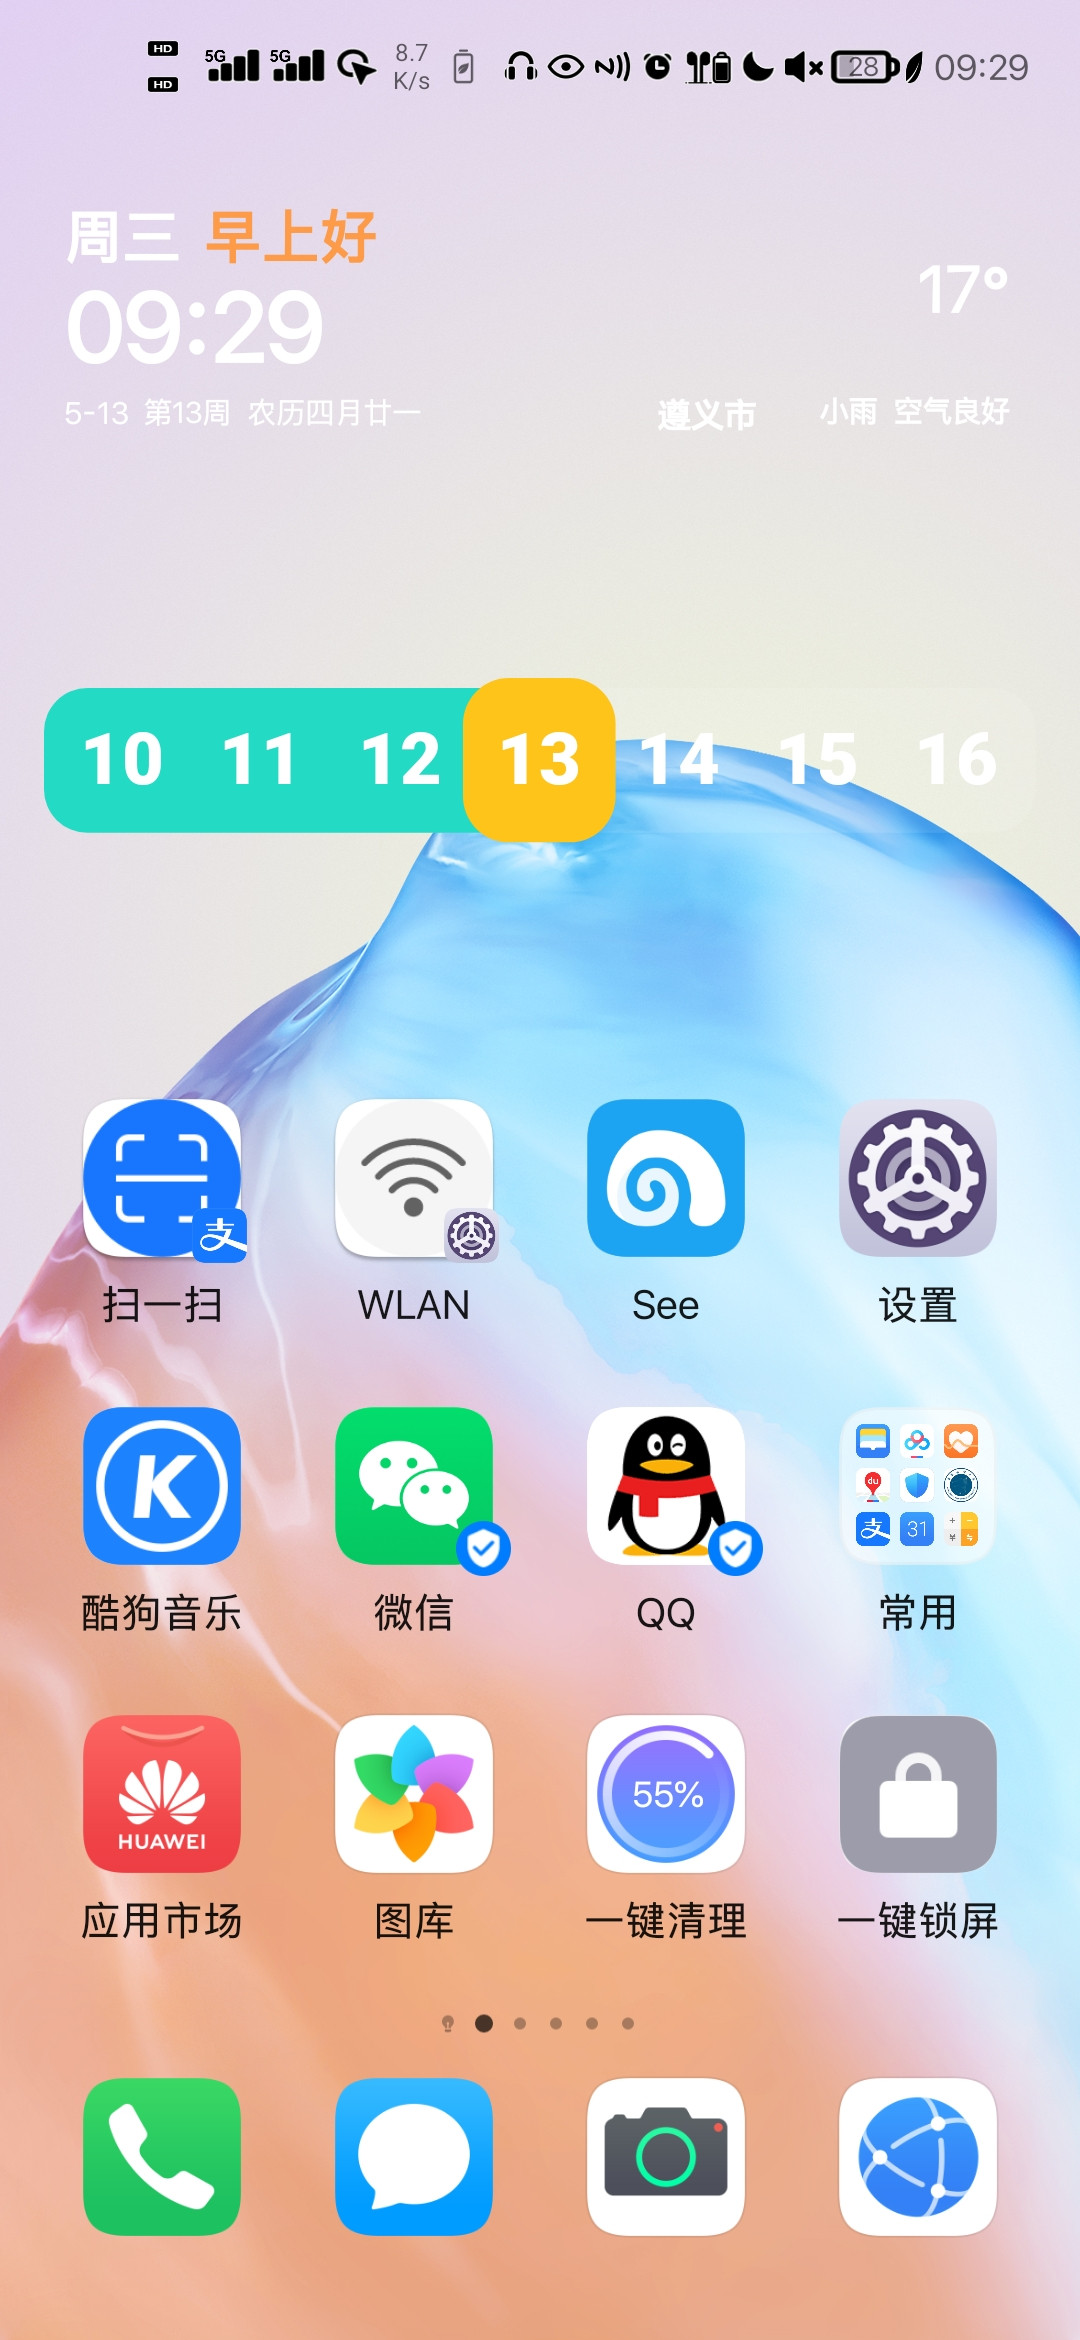 preview_icons_0_副本 - 副本.jpg